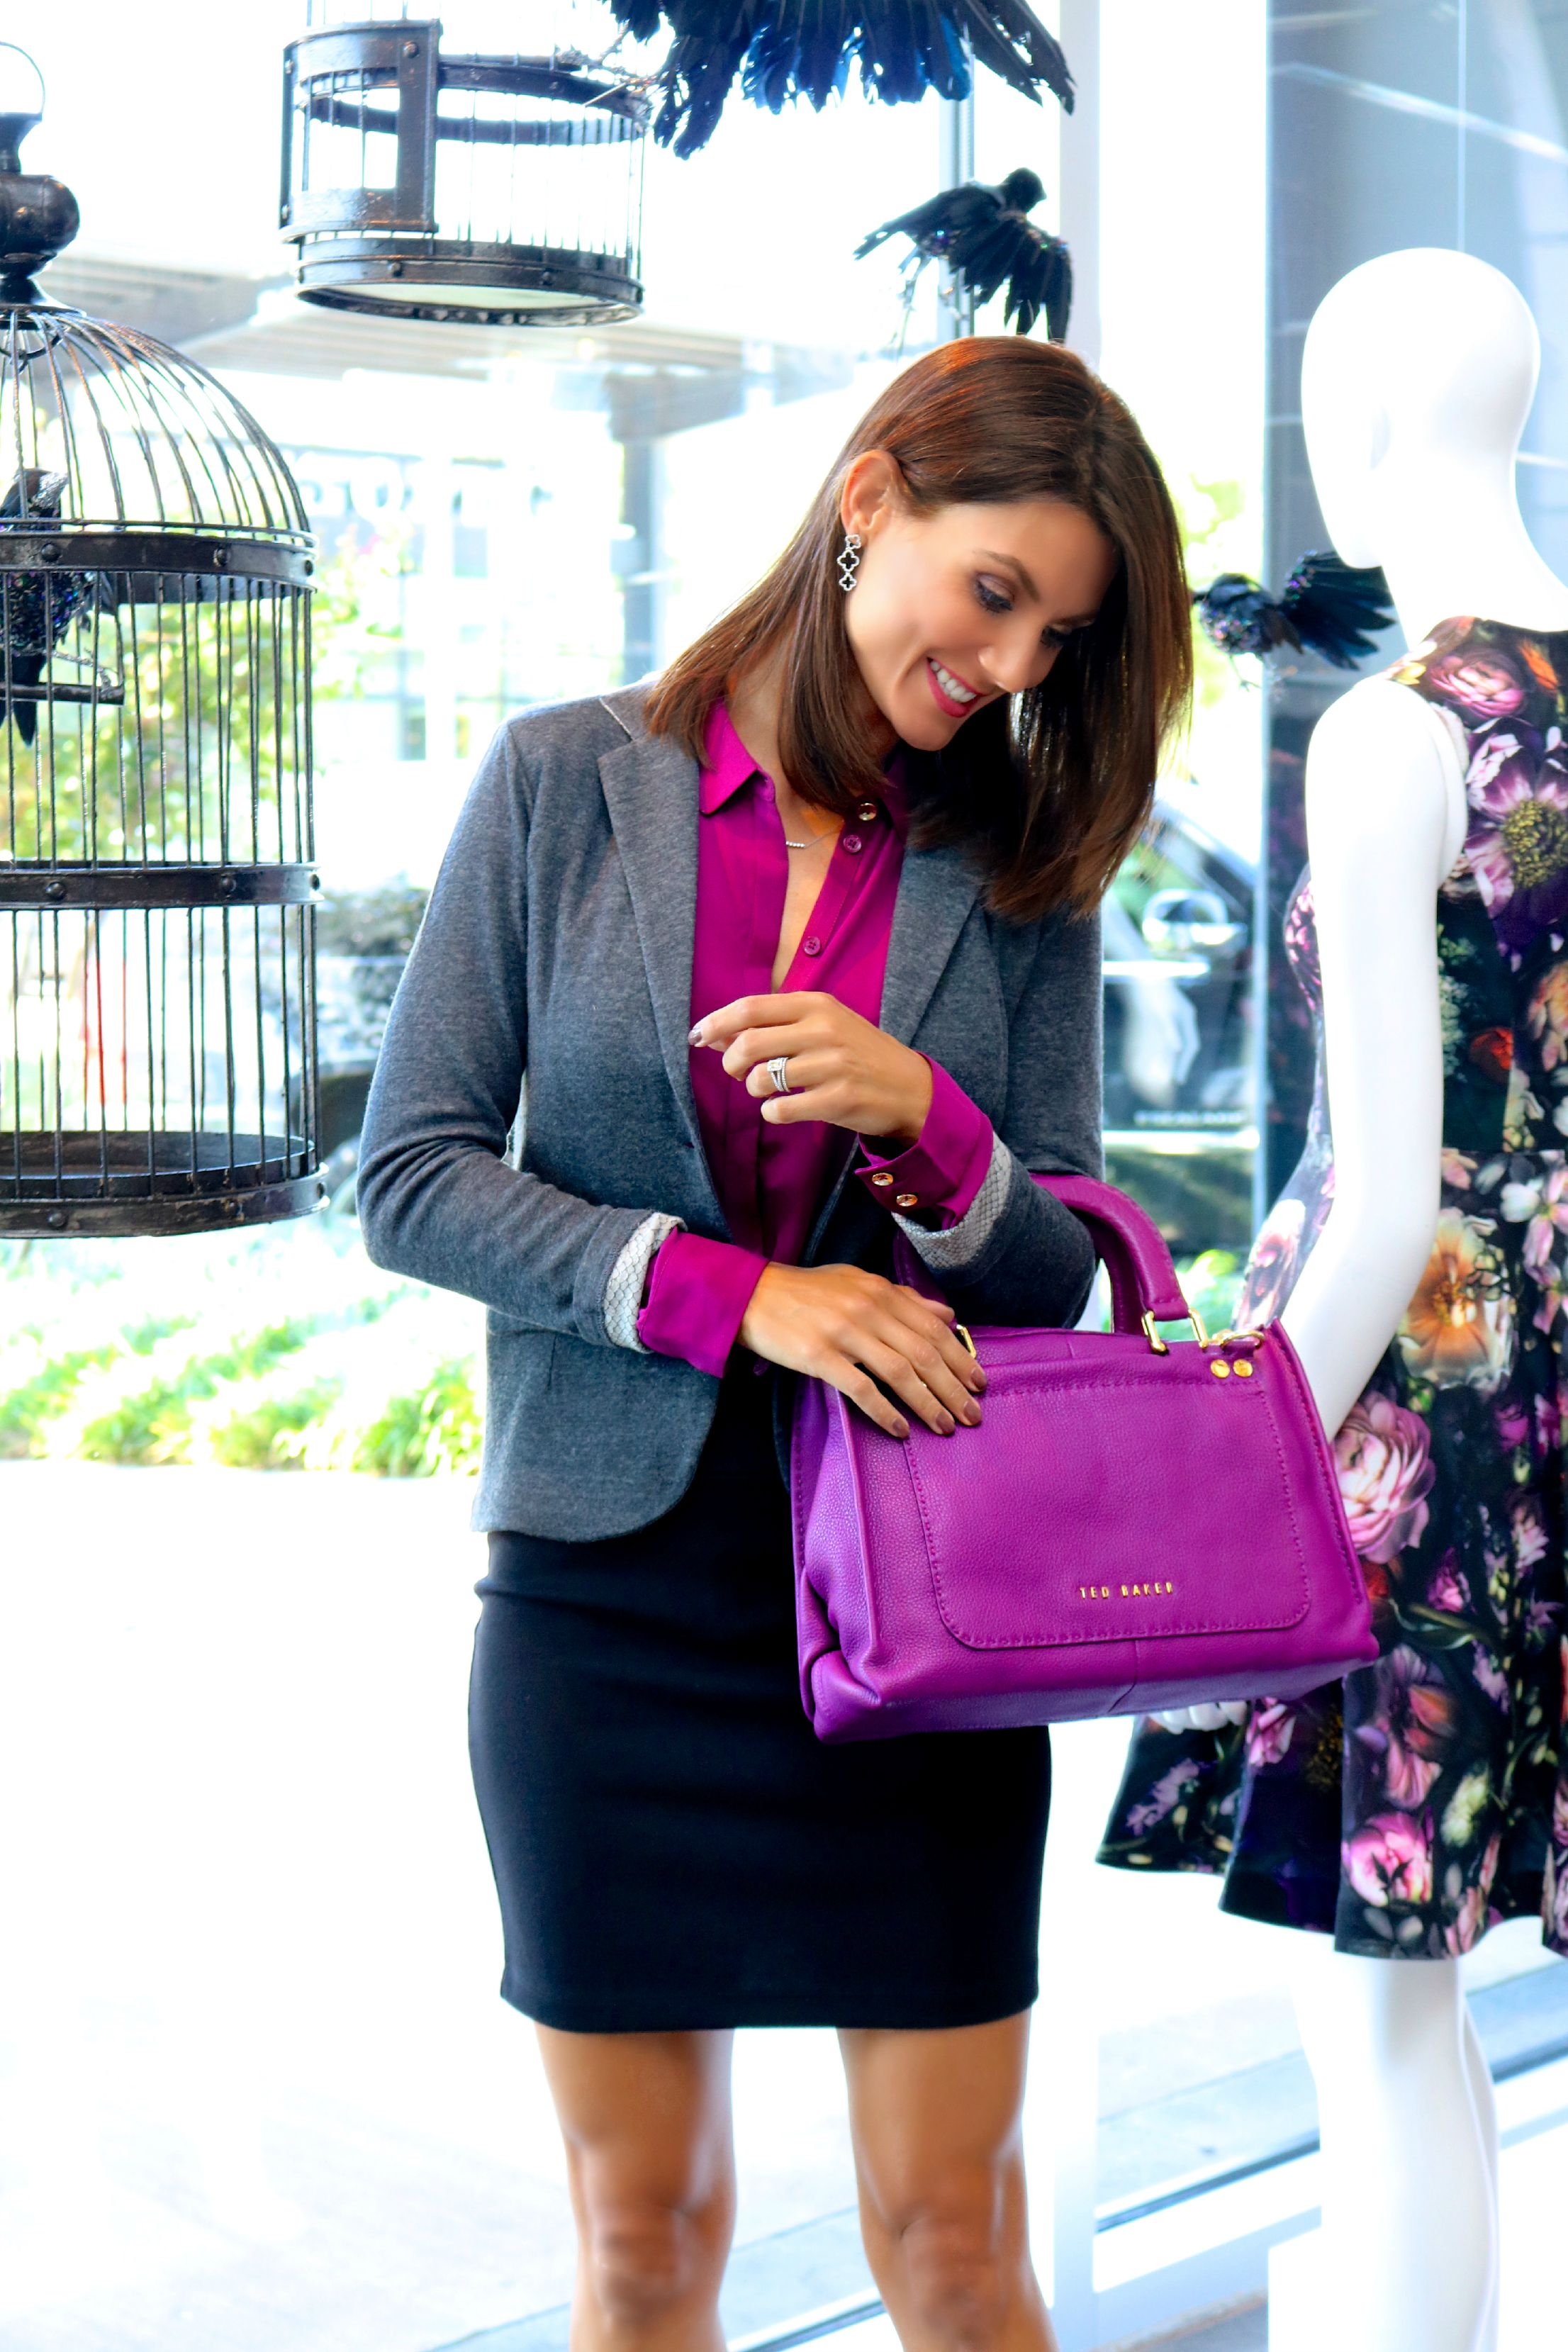 Majestic Python Printed Blazer in Anthracite, Ted Baker Tiona Chiffon Shirt in Grape, Only Hearts Mini Skirt in Black